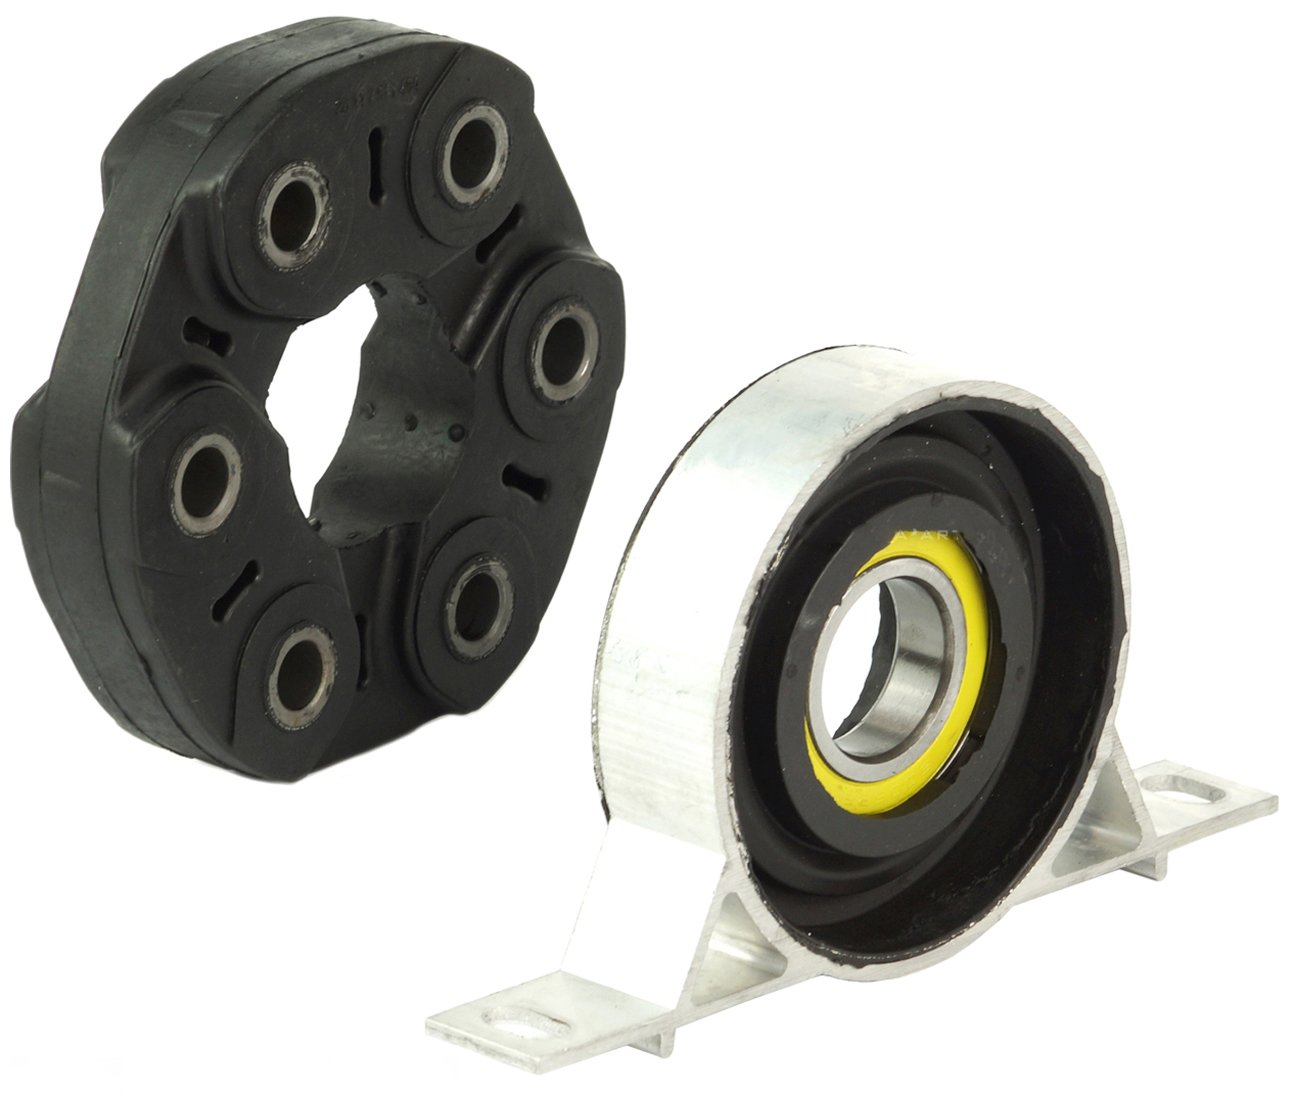 Bapmic Driveshaft Flex Disc Joint and Center Support Bearing for BMW E46 E90 E91 F10 F11 E85 Z4 by Bapmic